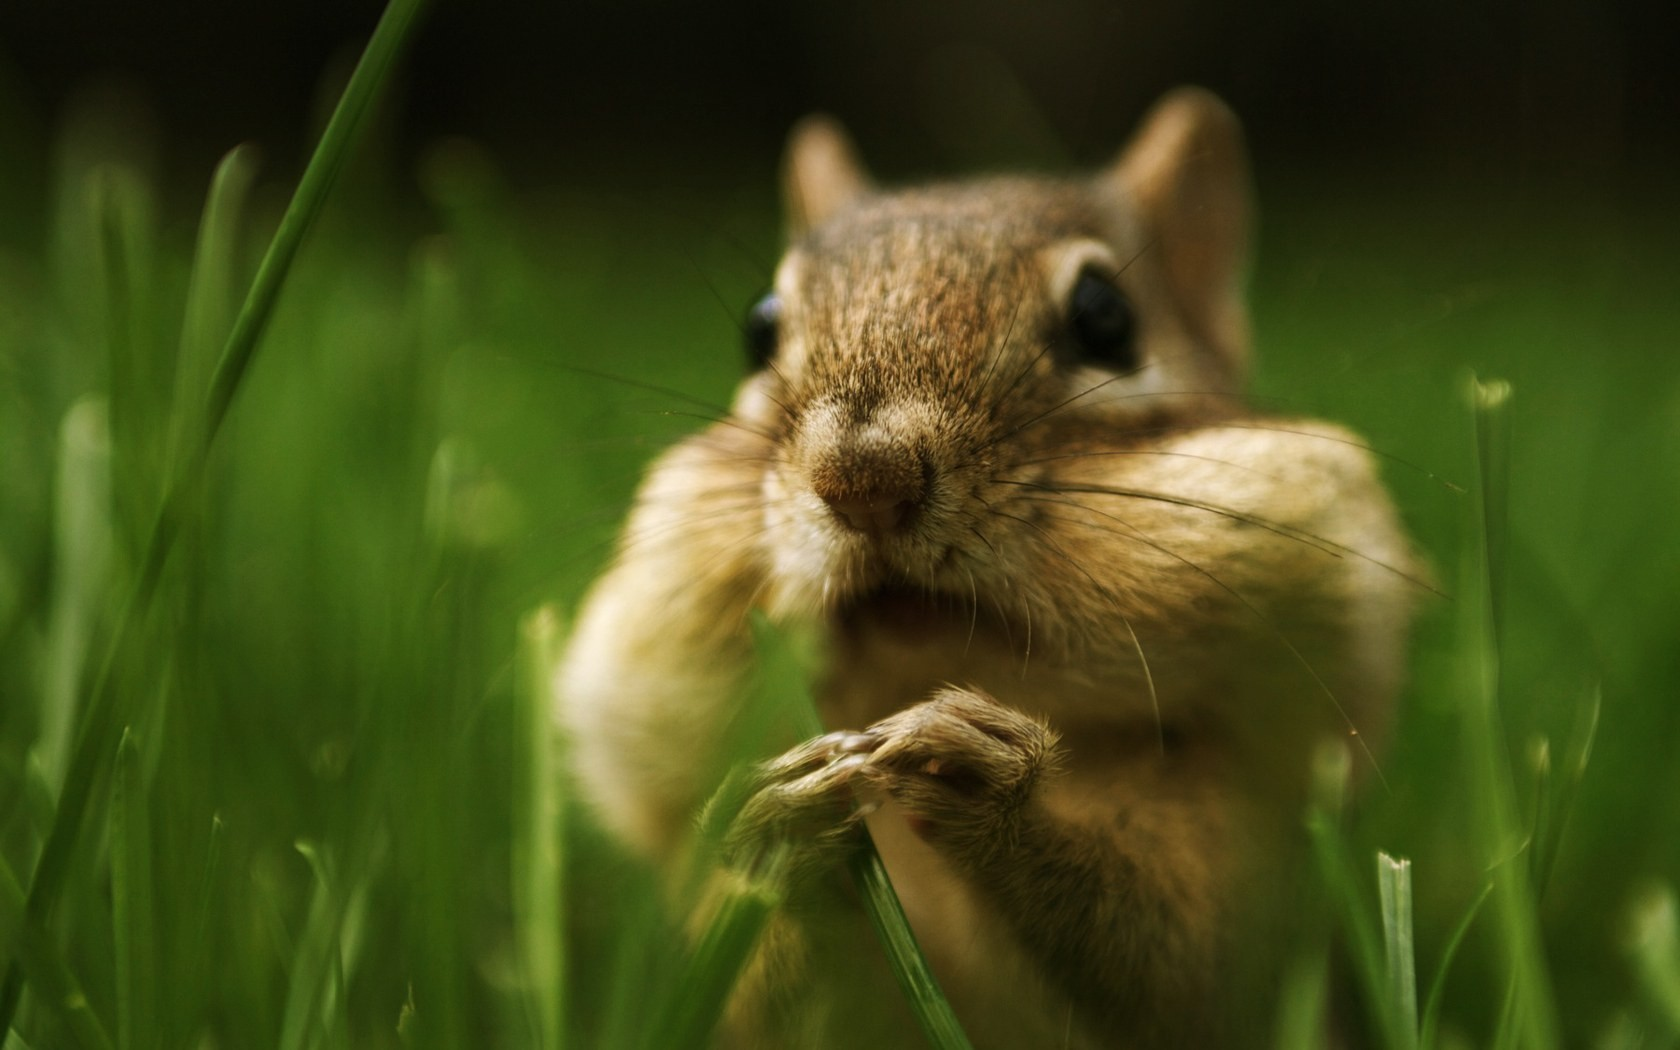 Cute Squirrel Wallpaper 16253